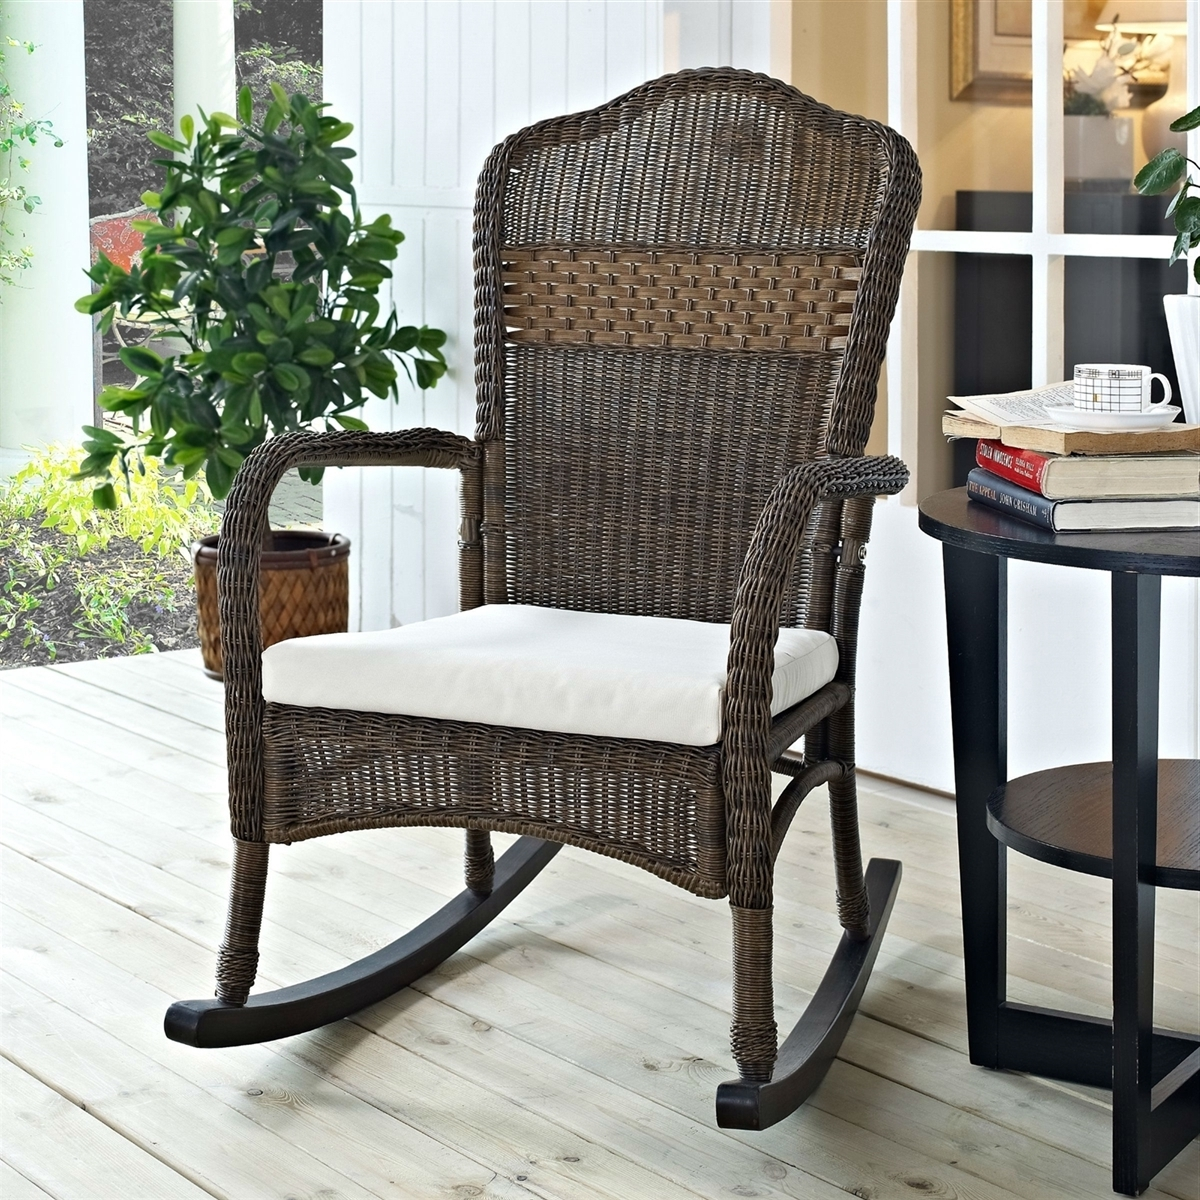 Small Patio Rocking Chairs For Latest Patio Furniture Rocking Chair Mocha With Beige Cushion Best Outdoor (View 18 of 20)